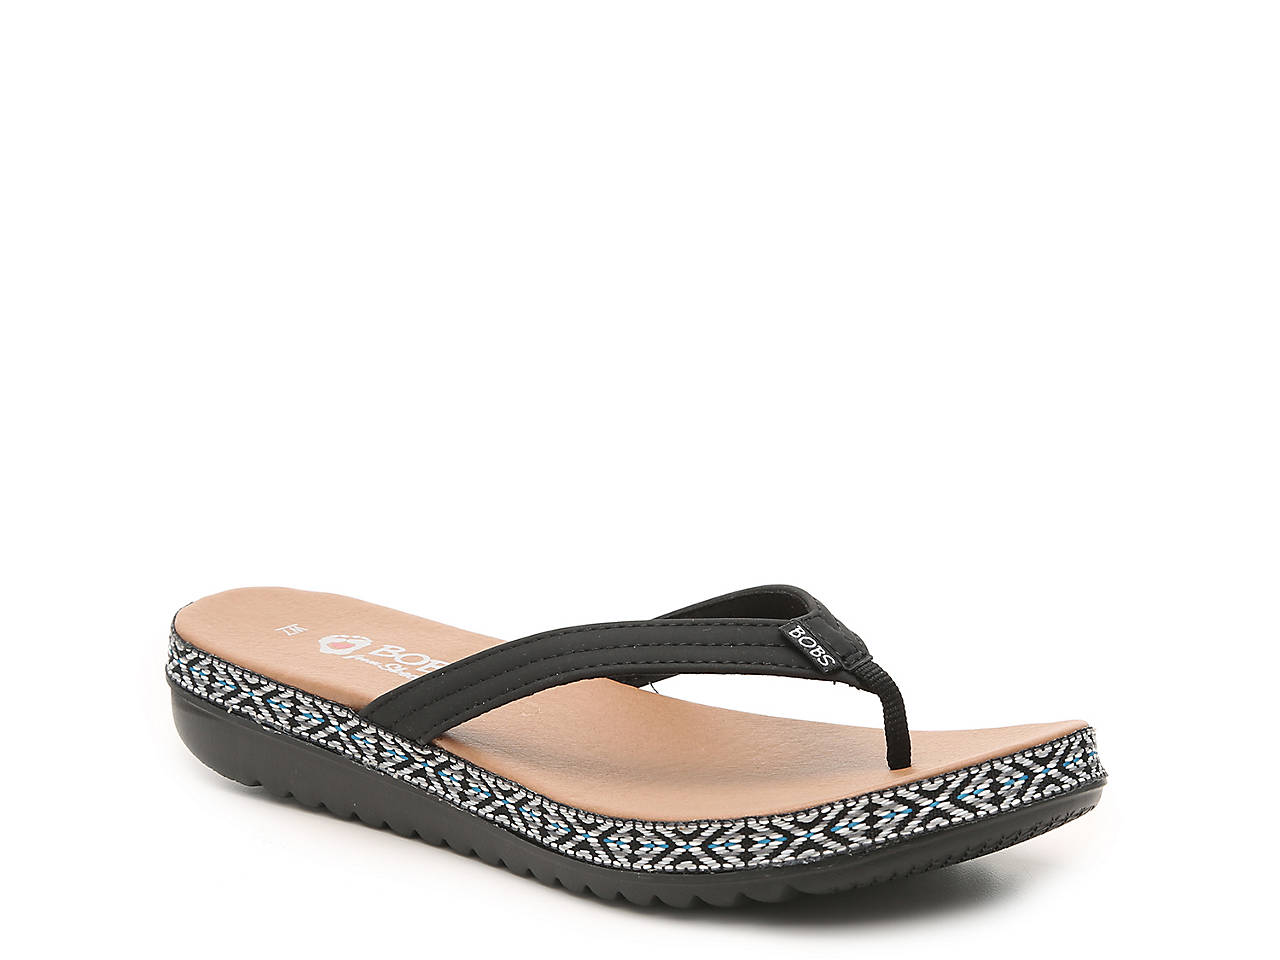 Sunkiss Picnic Party Wedge Flip Flop by Skechers Bobs